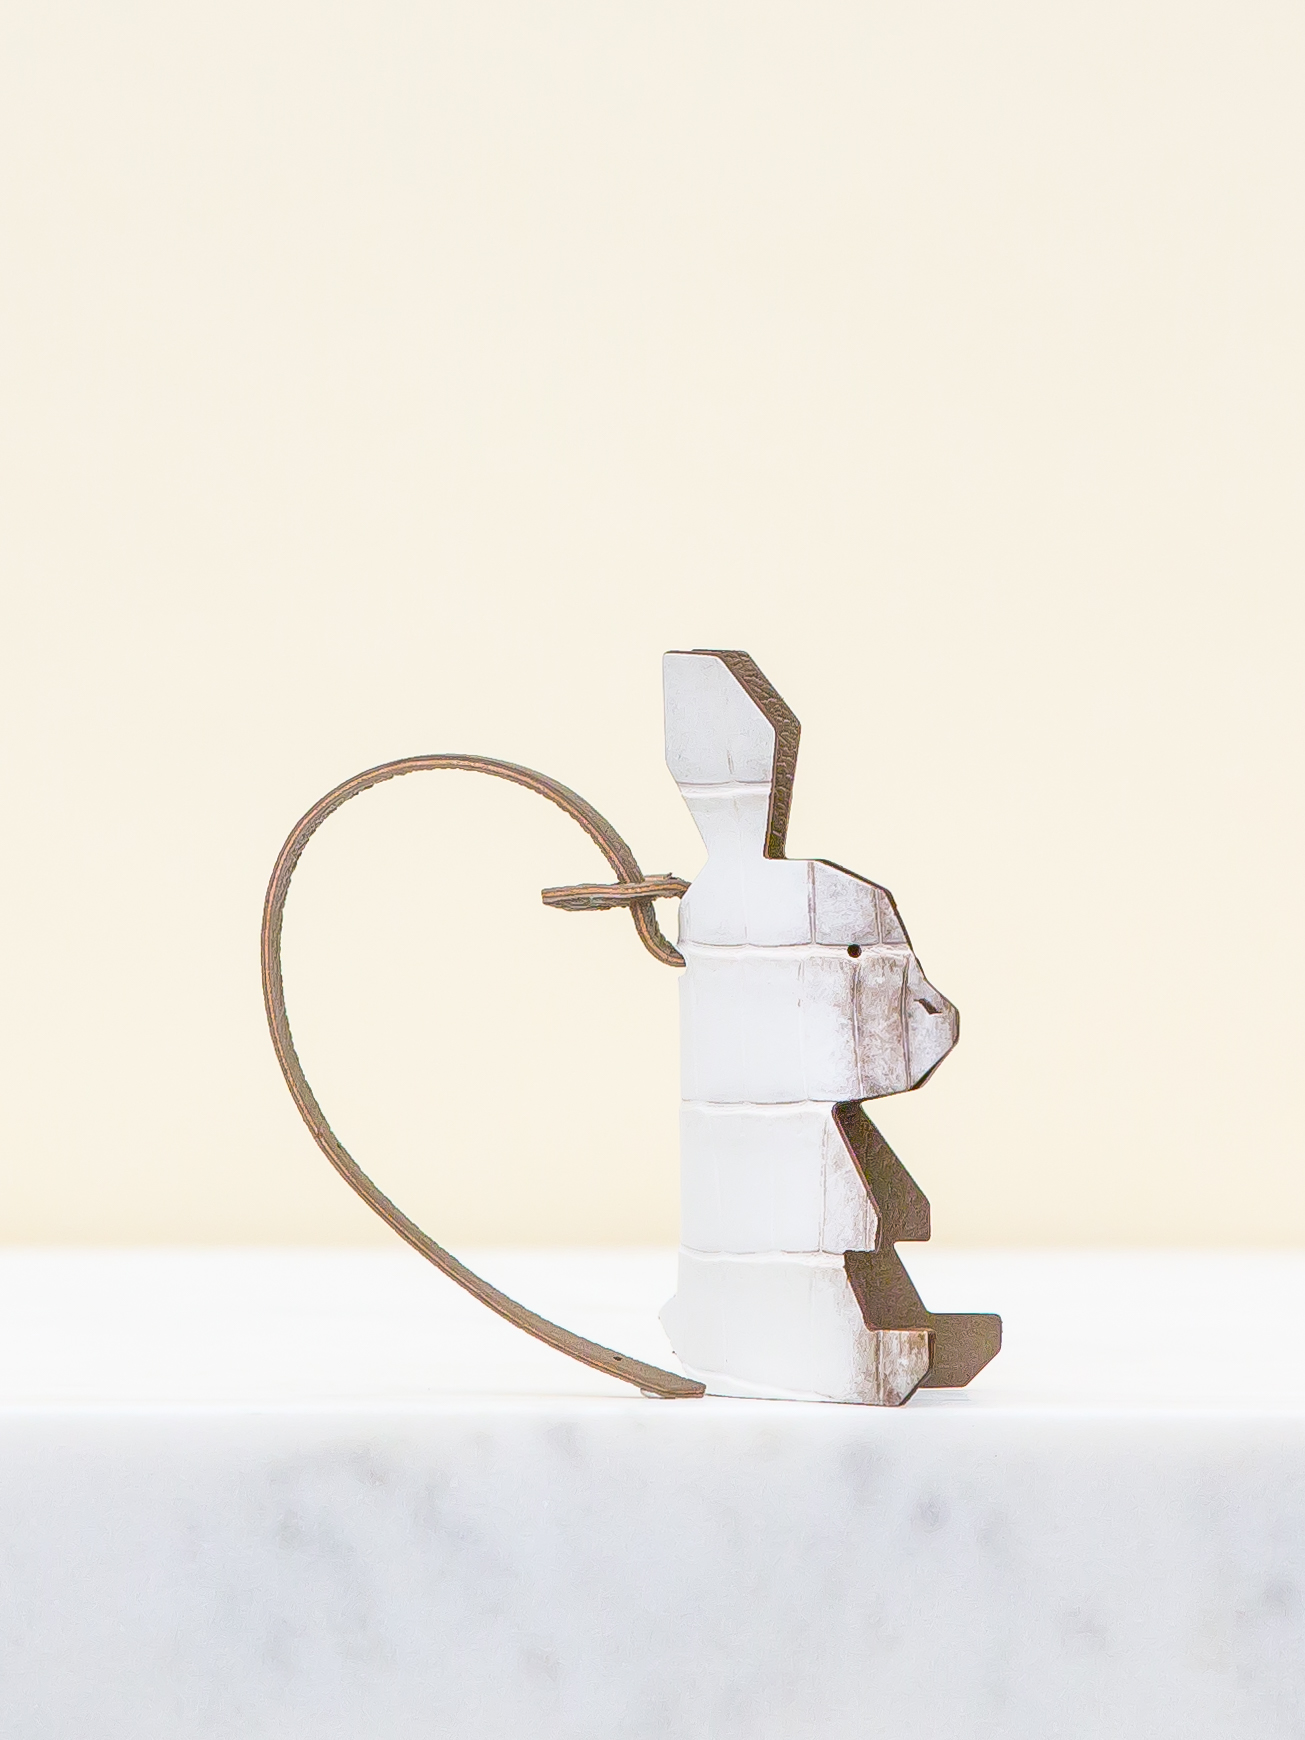 Chloe Bag Charm - White/Brown by Chance Mystère on curated-crowd.com